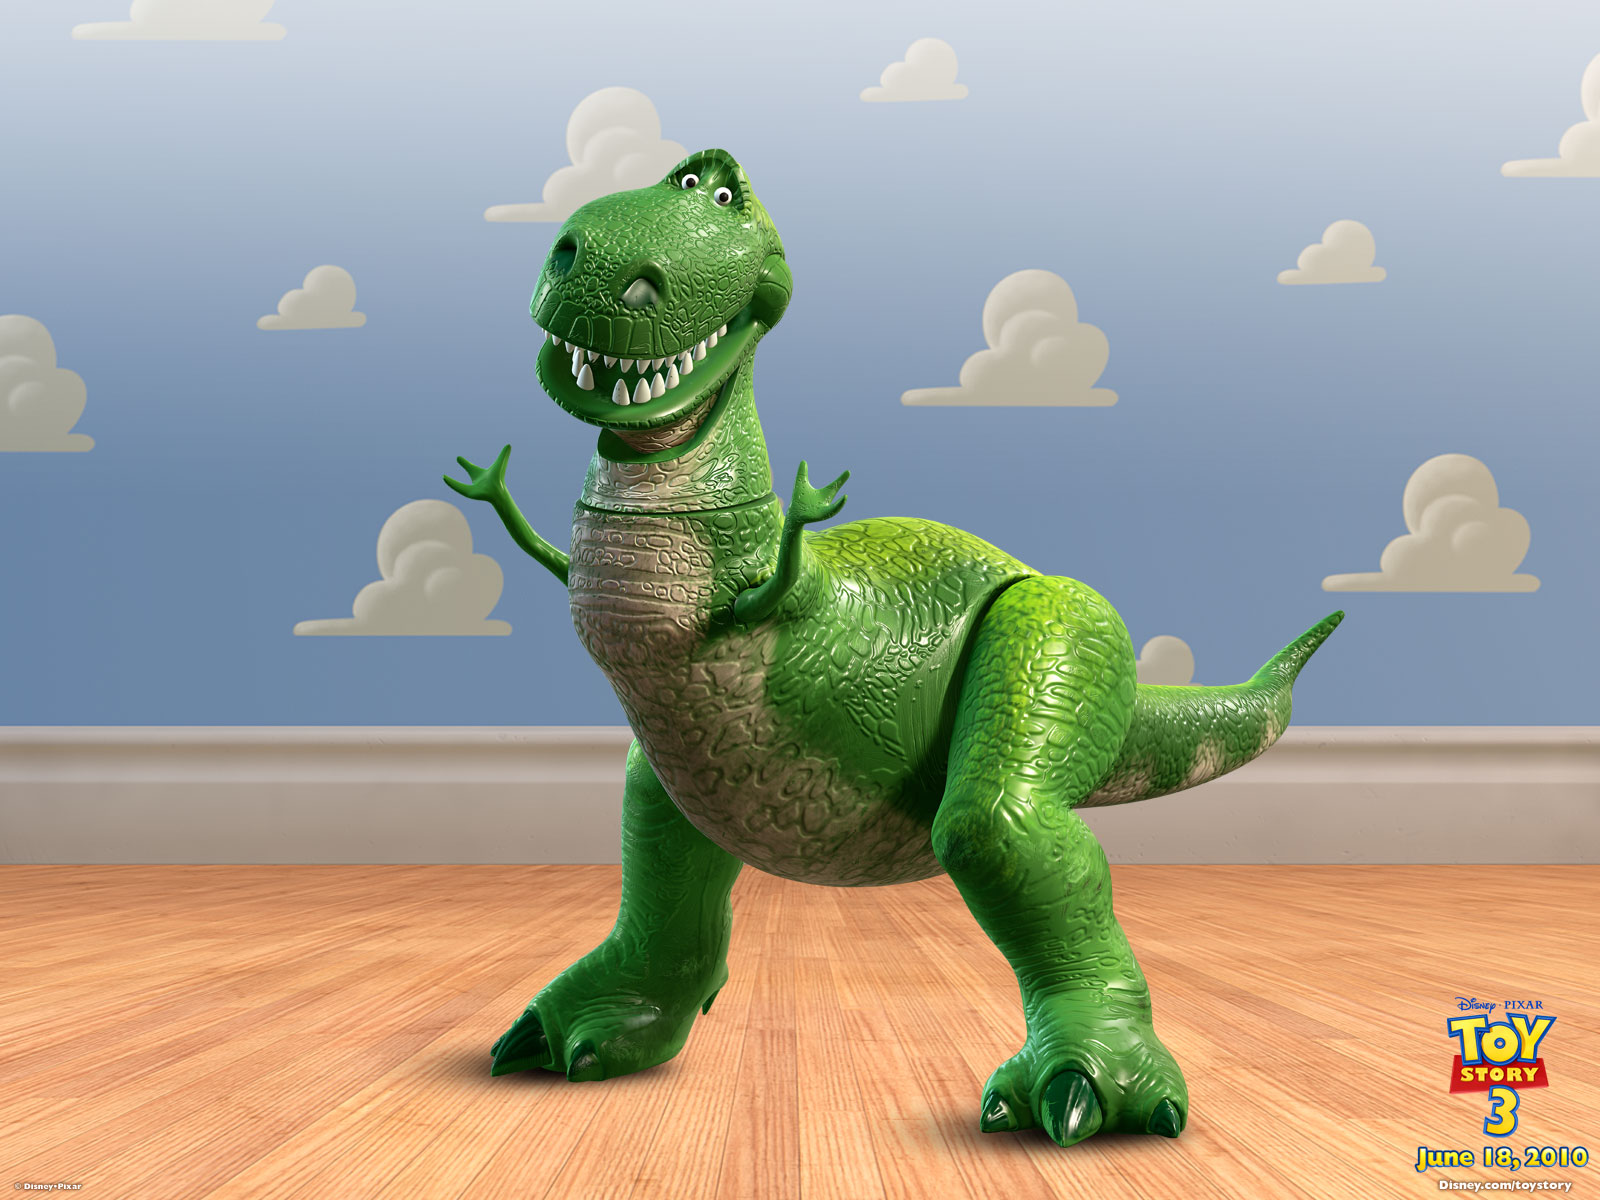 Minions decoded rosette delacroix now the main point that convinced me though is regarding the tyrannosaurus rex here let me grab a picture this one is from toy story seems fitting biocorpaavc Choice Image